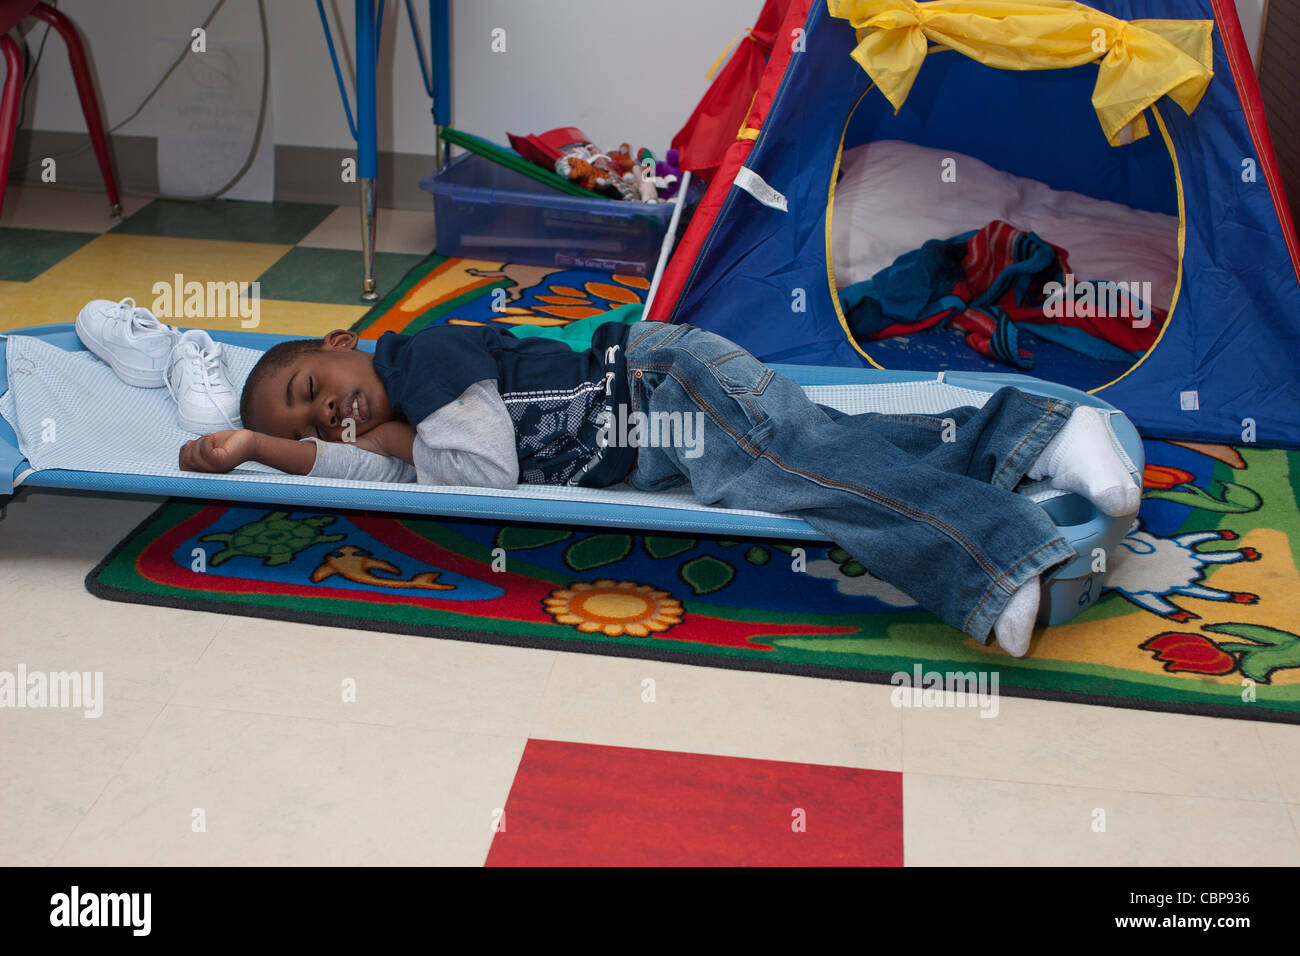 4 Year Old African American Preschool Boy Sleeping On A